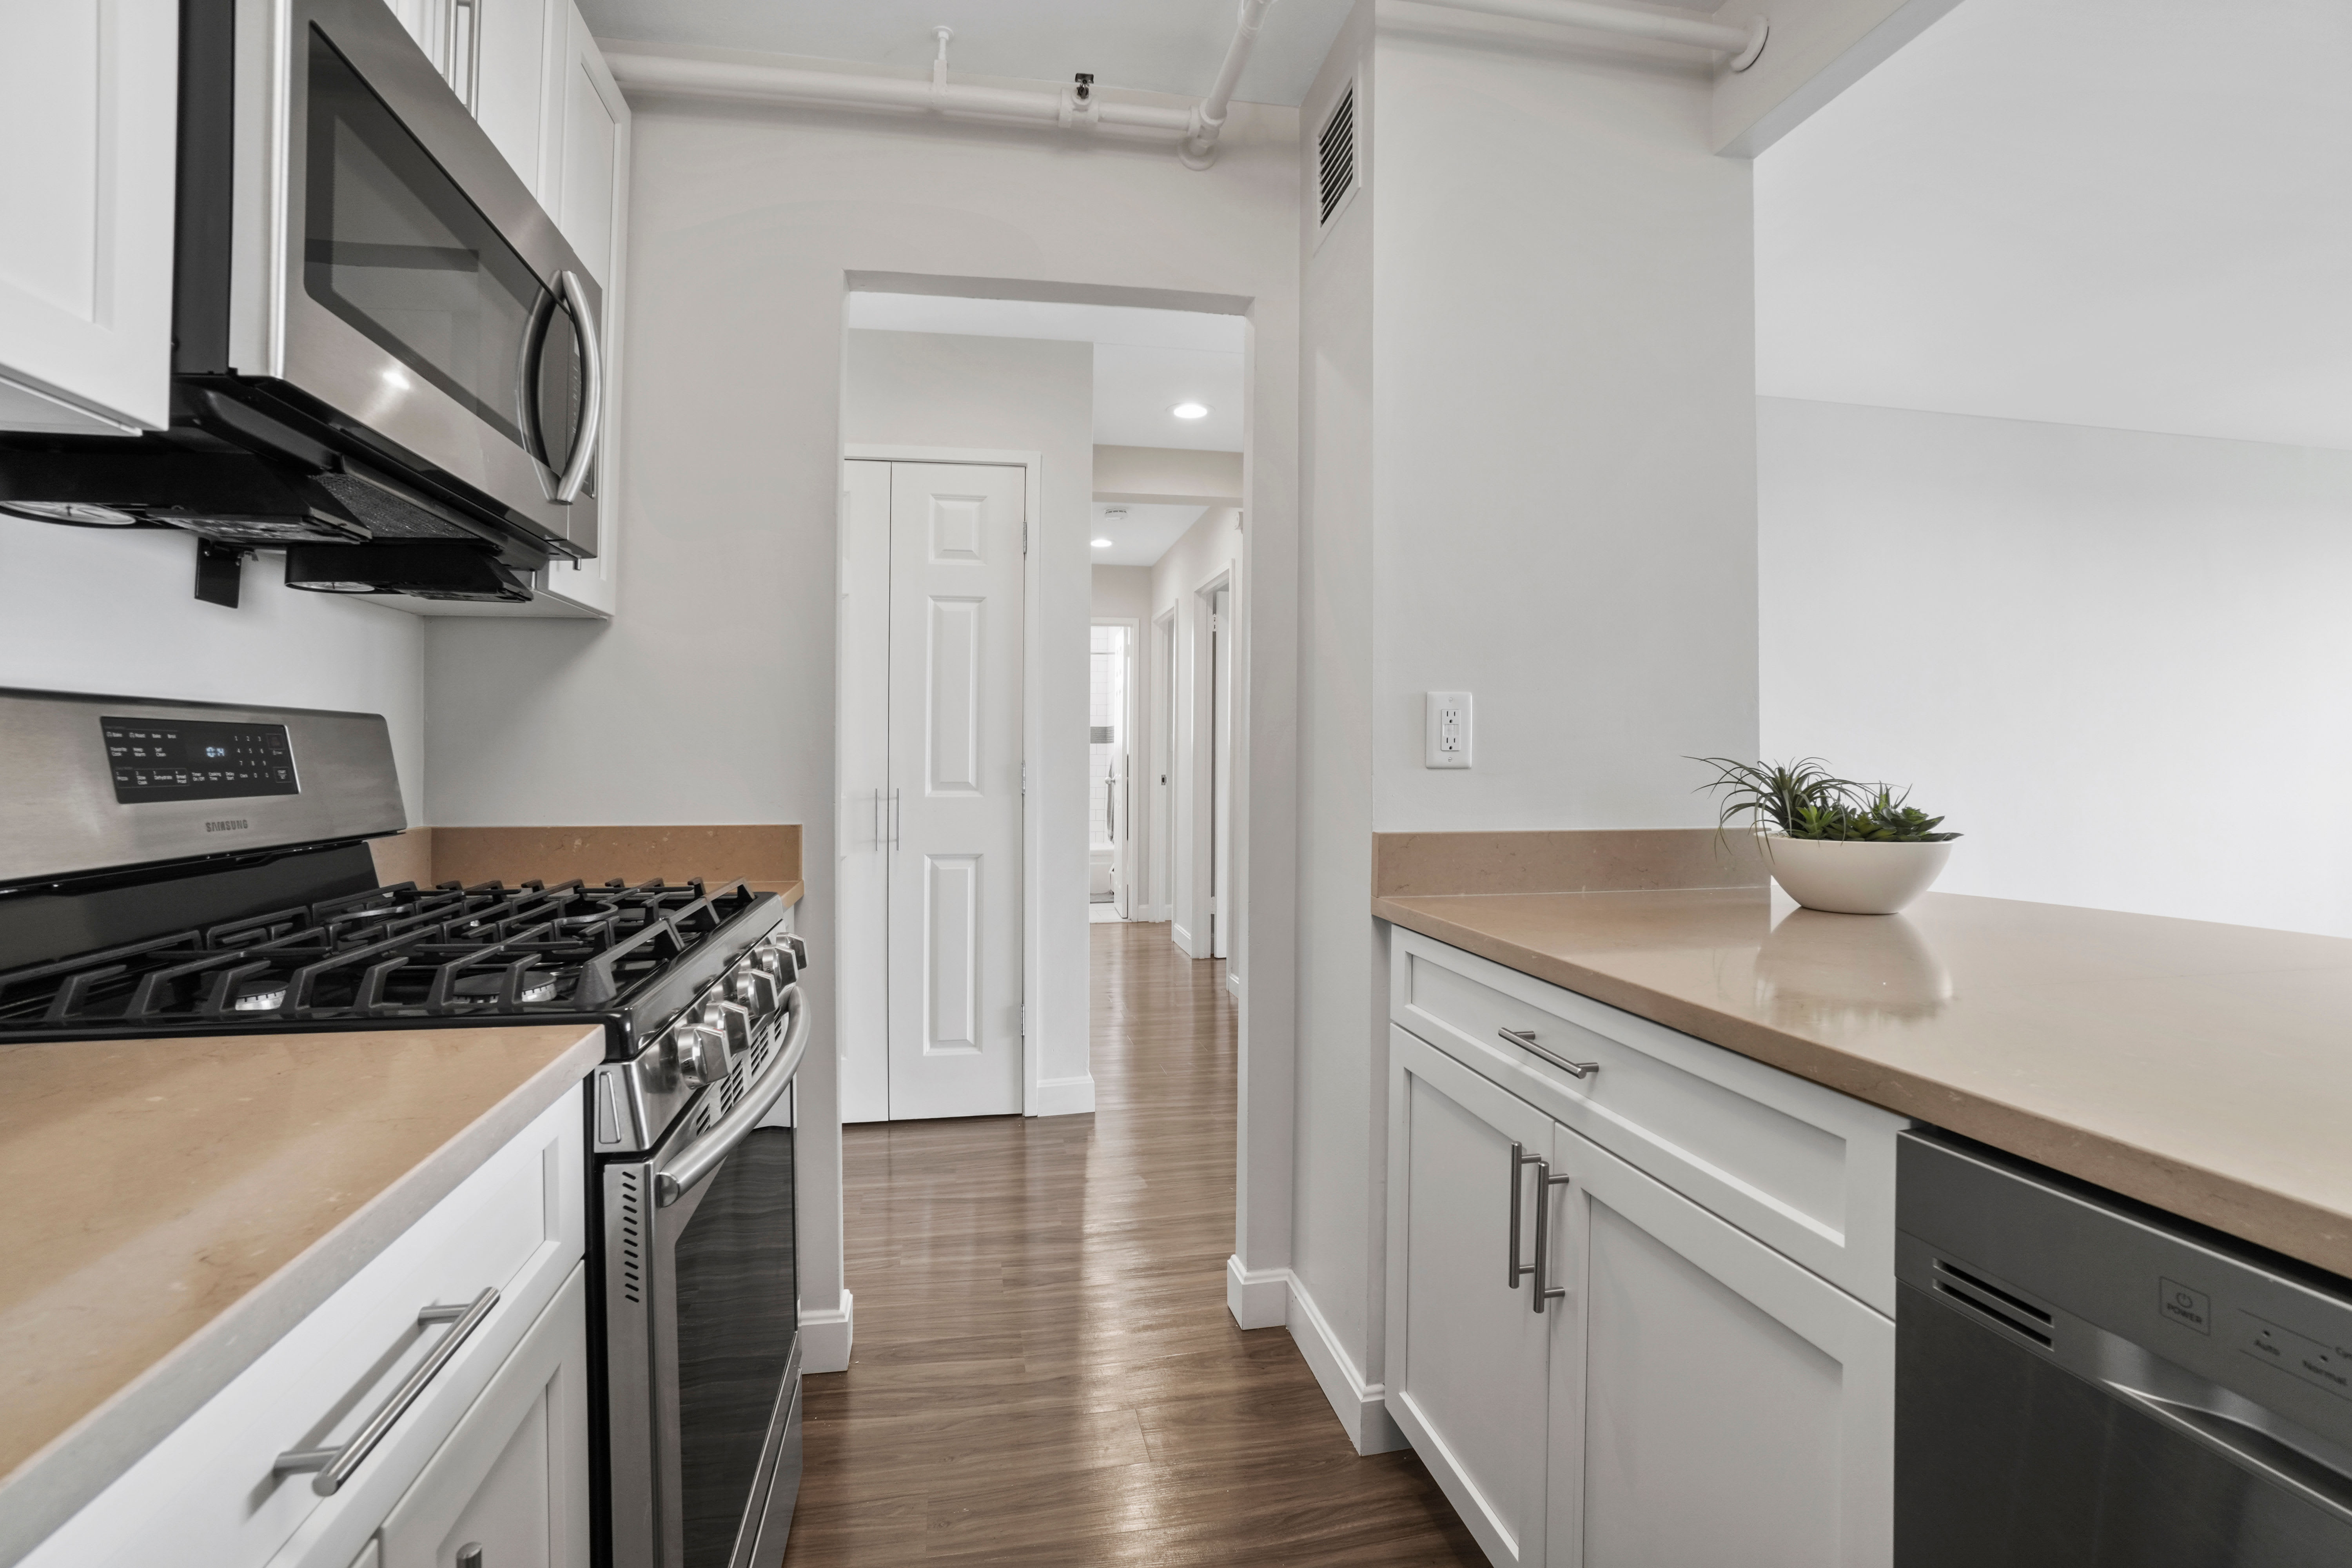 Modern kitchen looking into living space at Parkside Place in Cambridge, MA